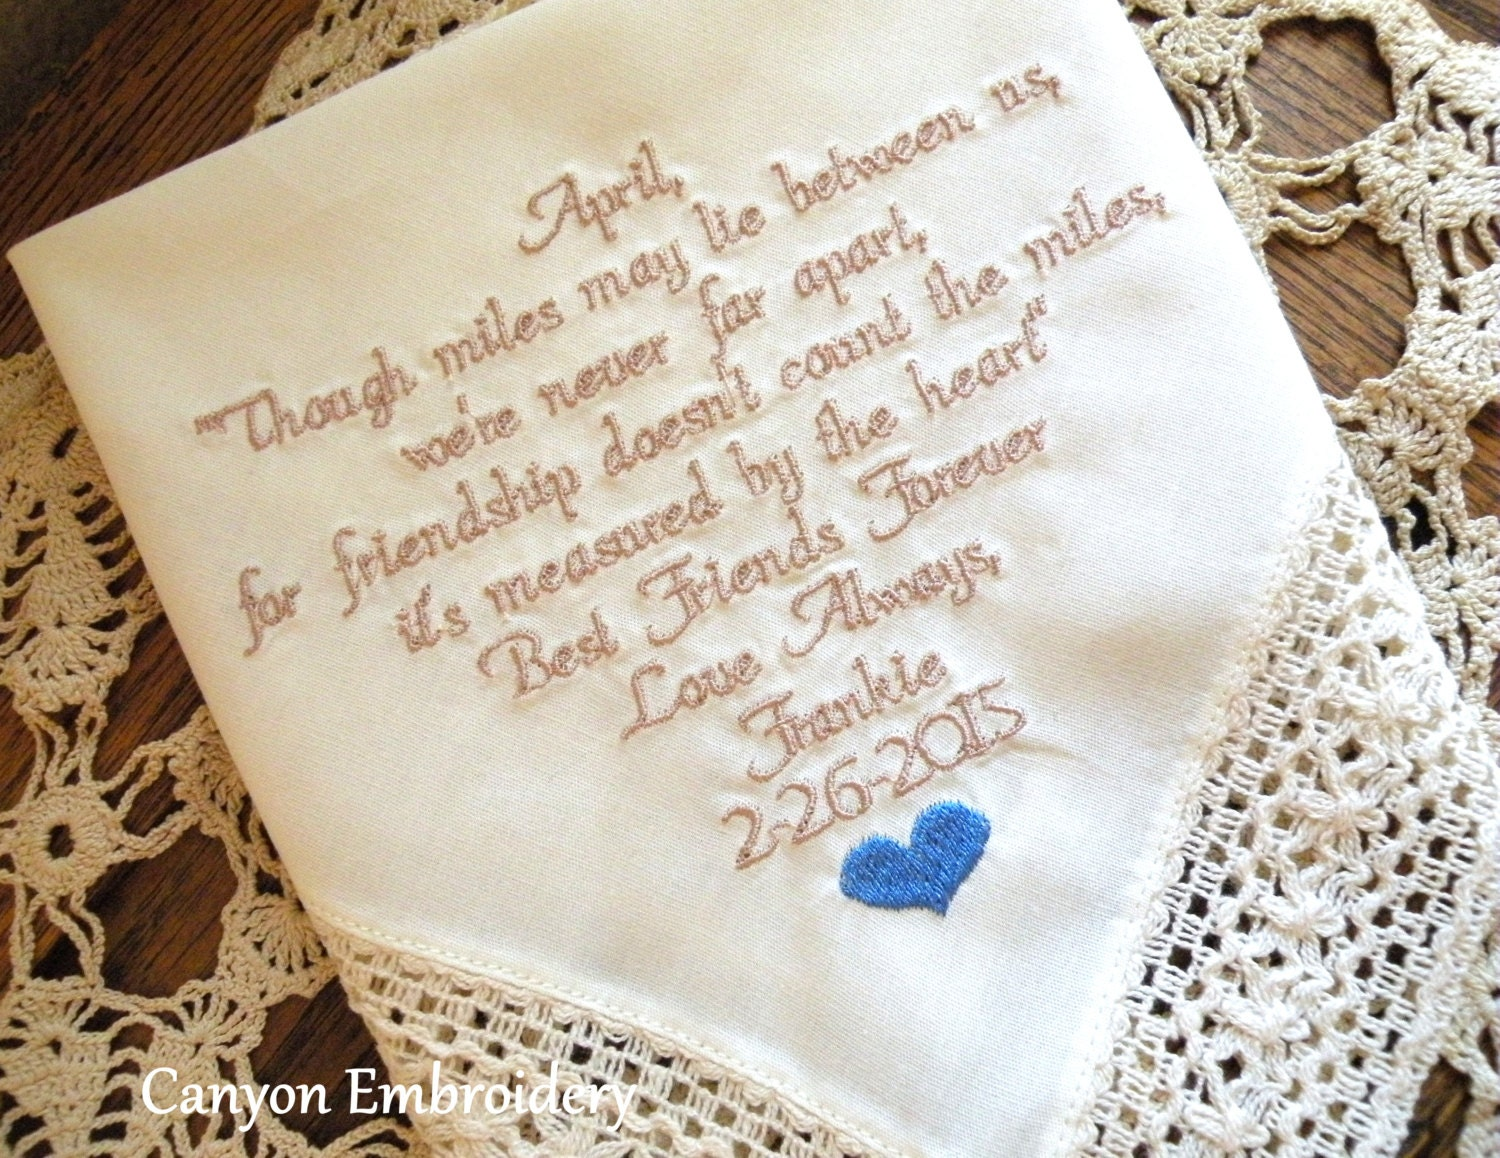 Gift For Best Friend On Wedding Day: Best Friend Wedding Gift Embroidered Wedding Hankerchief